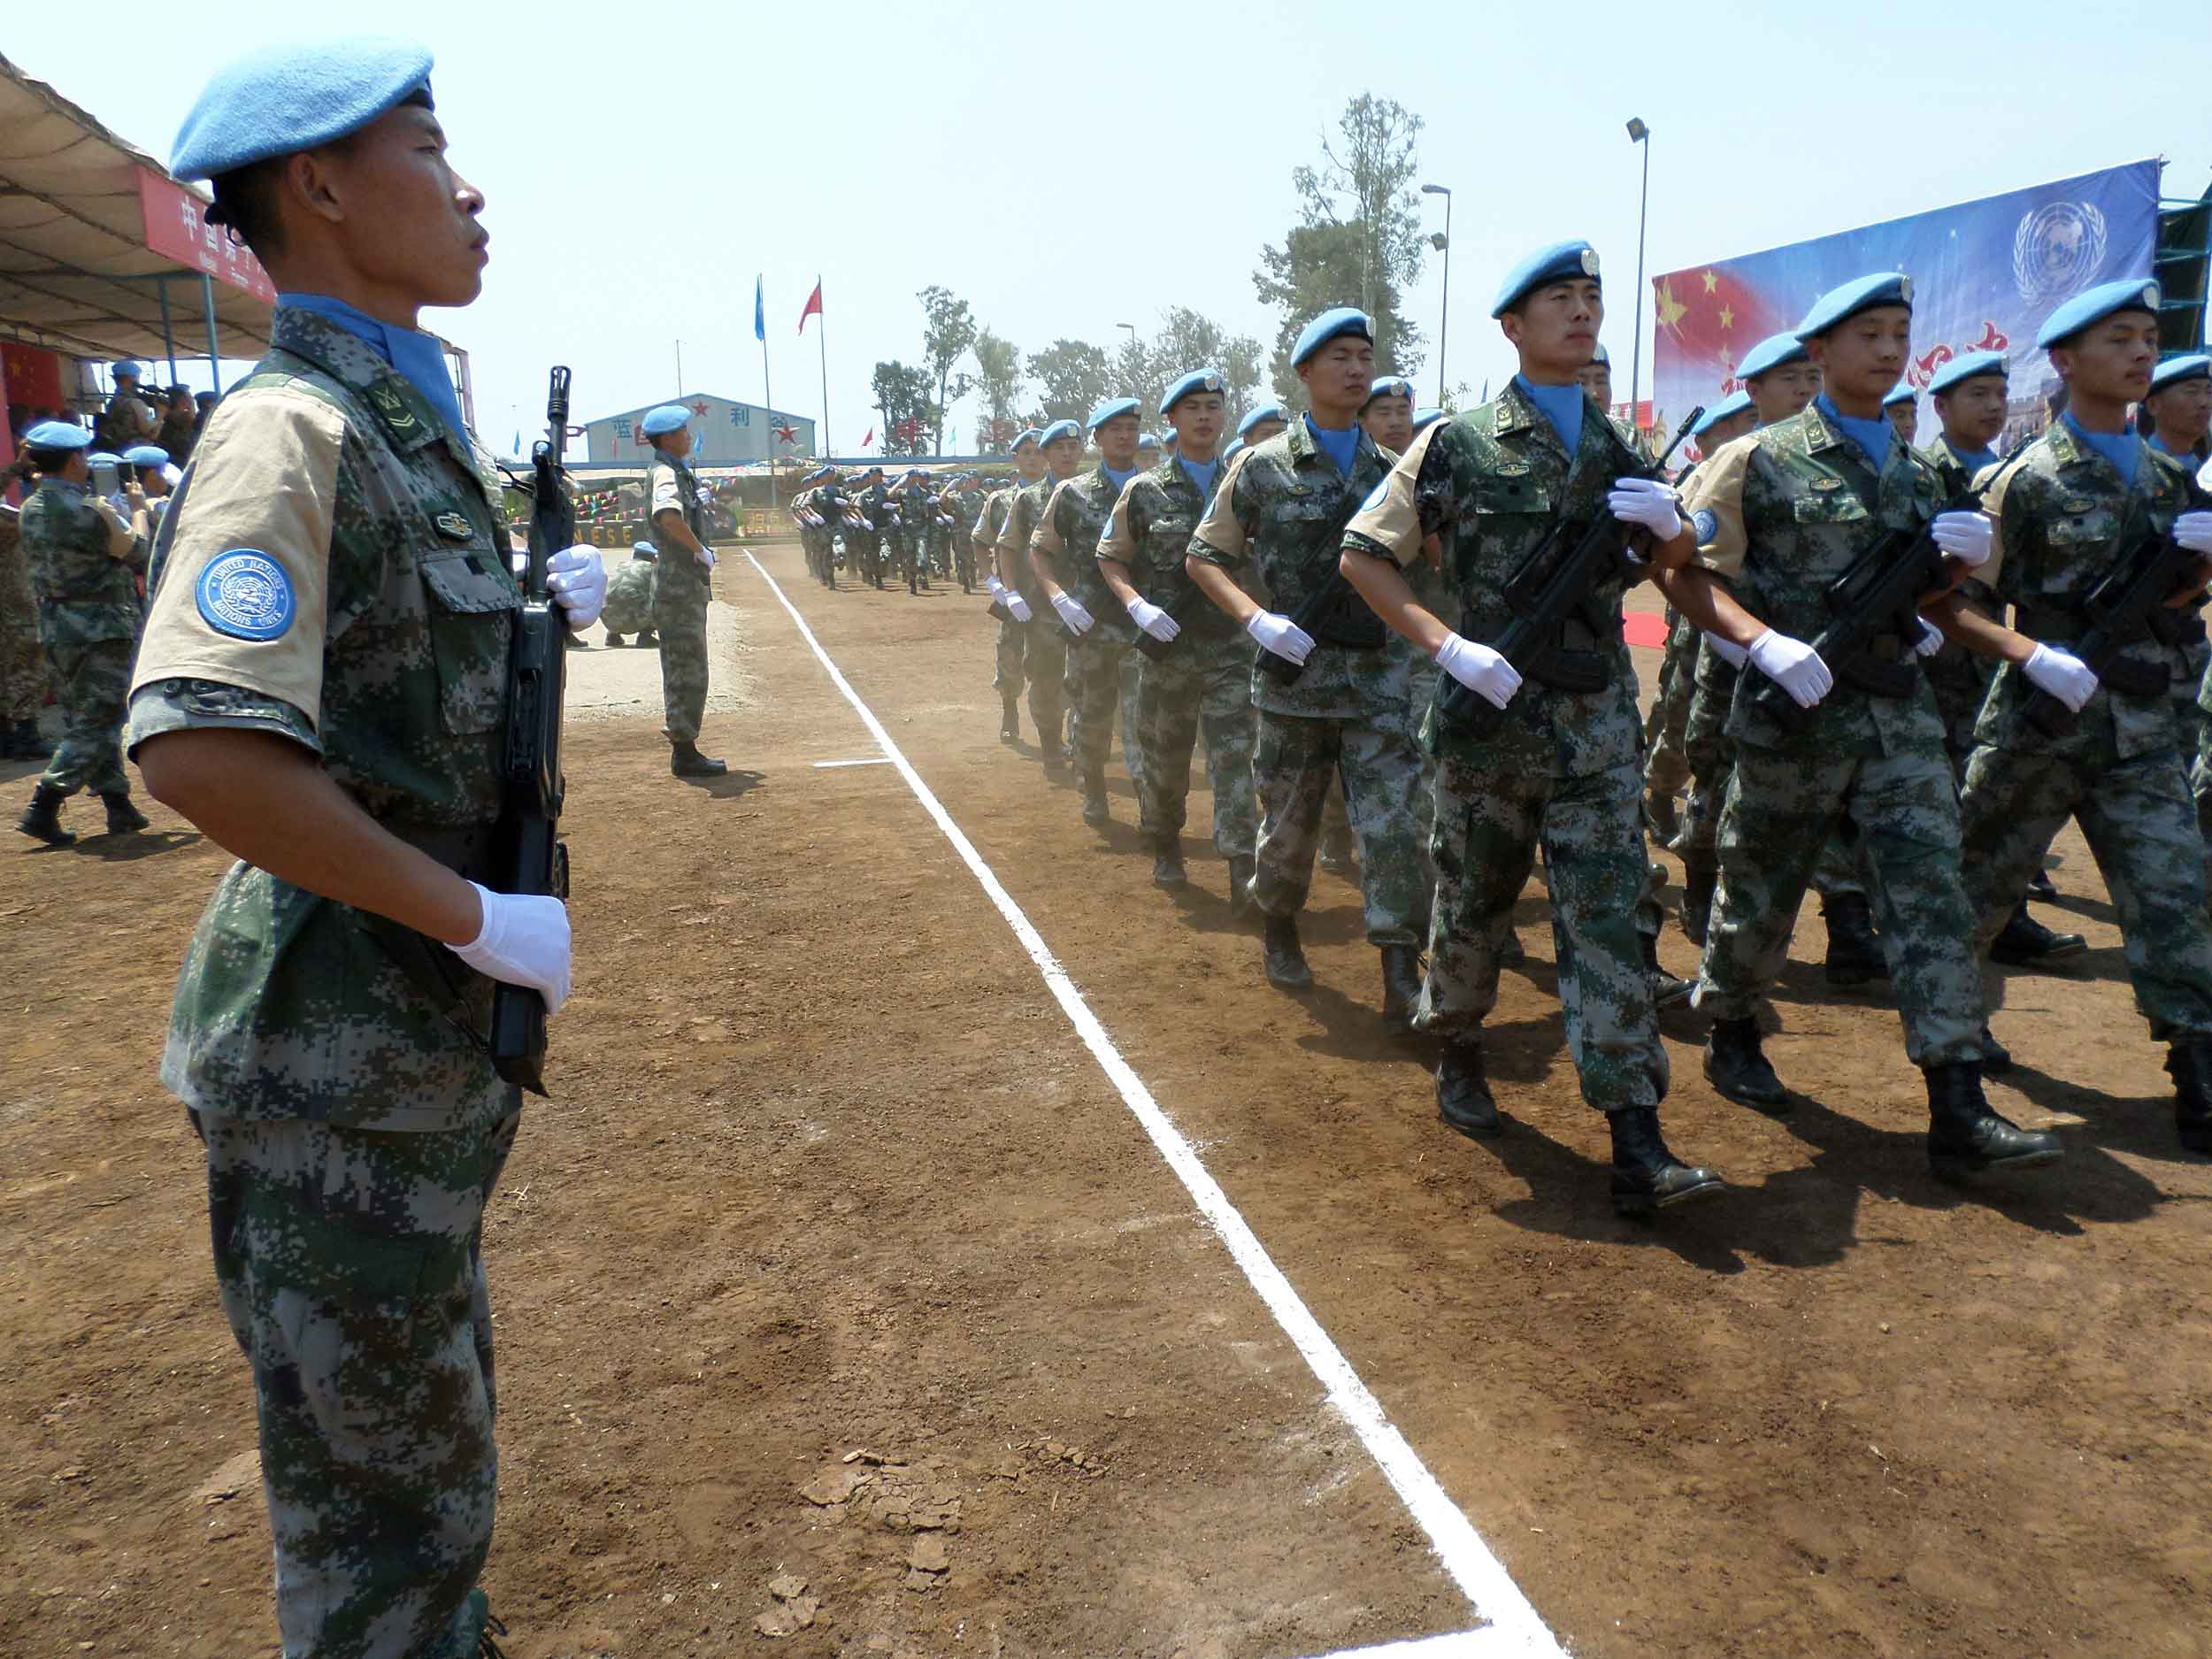 The Chinese contingent from MONUSCO operating in the South Kivu province. © MONUSCU Photo's/Flickr